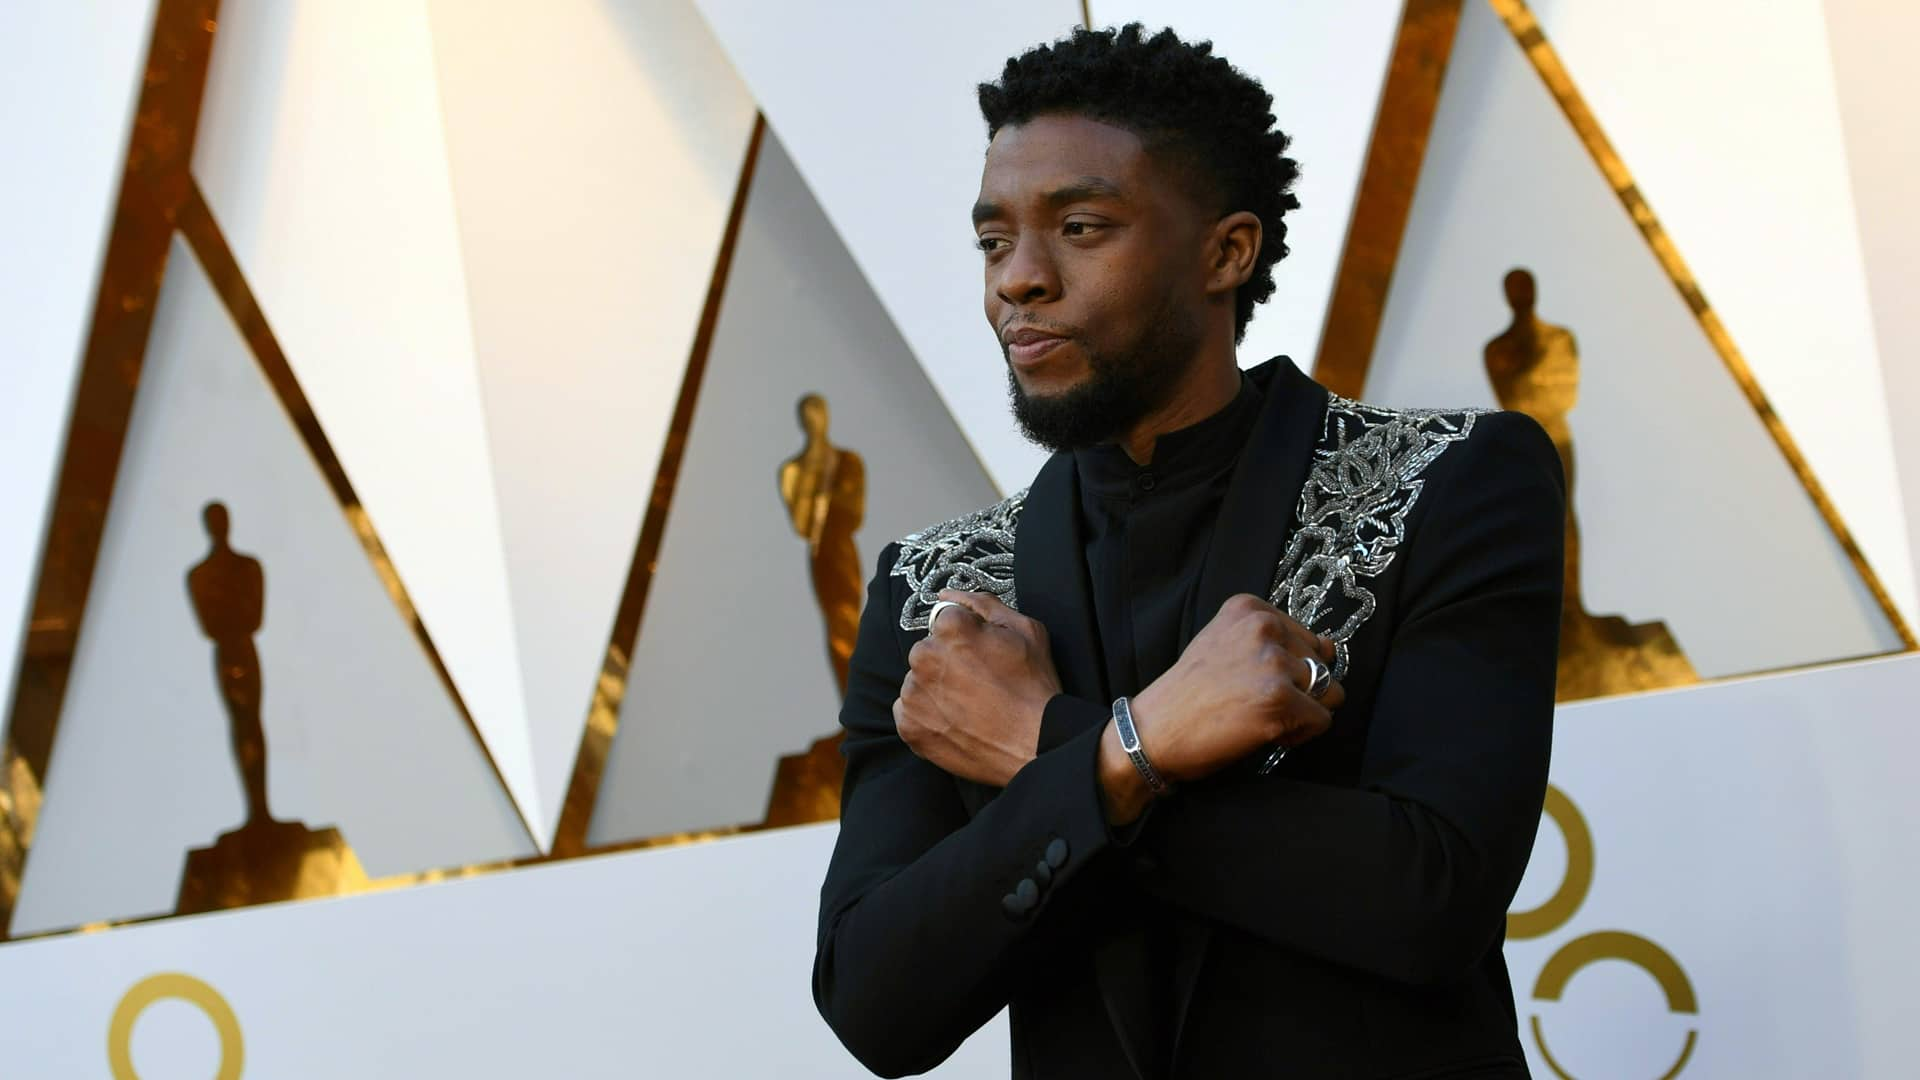 Shock, grief and gratitude after death of actor Chadwick Boseman | CBC News